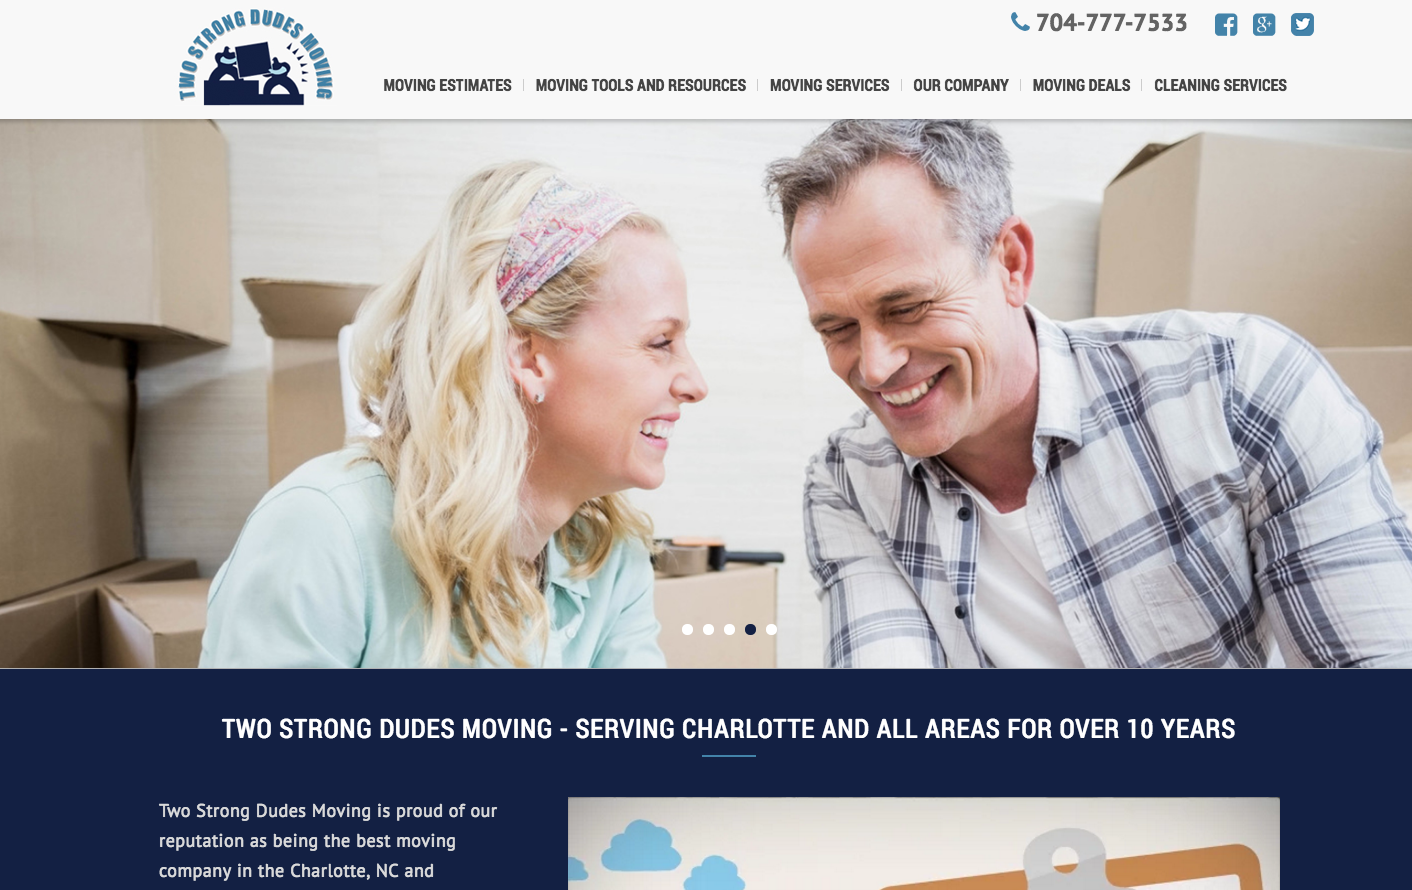 New Website Design for Two Strong Dudes Moving